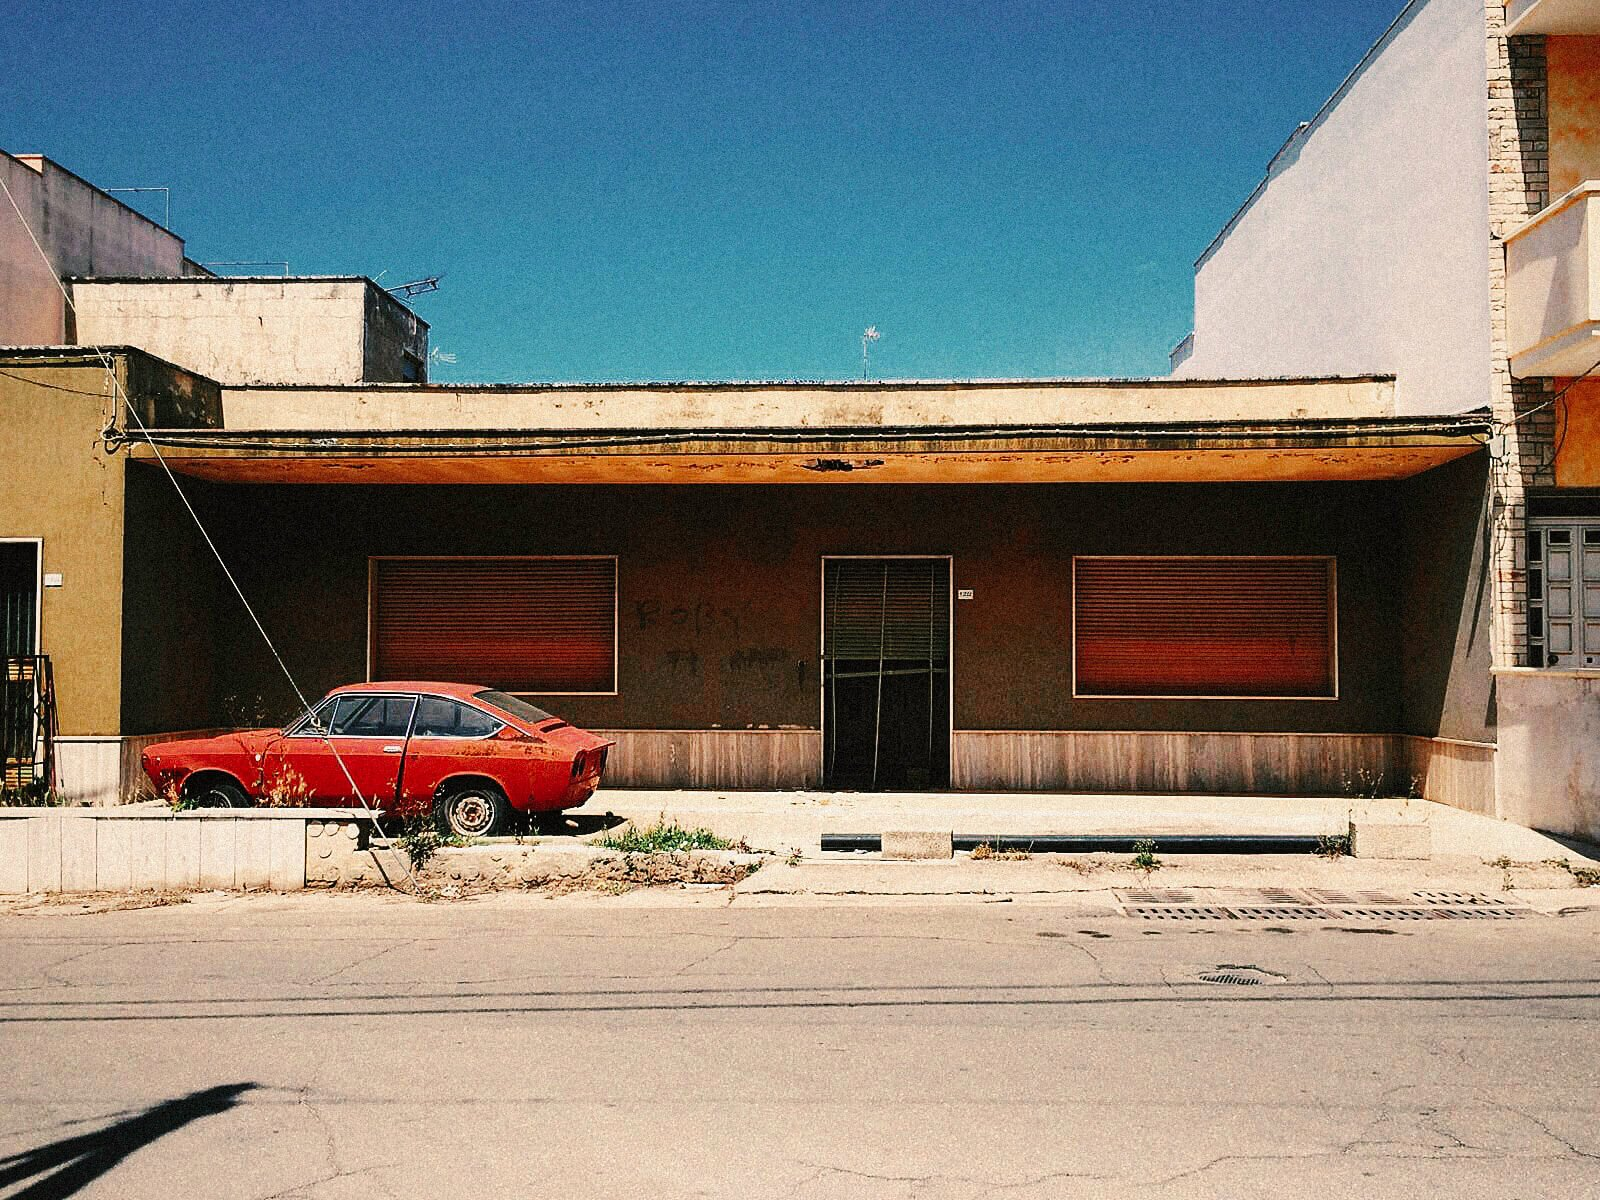 elisabetta riccio - urban vision- red car from the 30s abandoned in puglia in front of a house